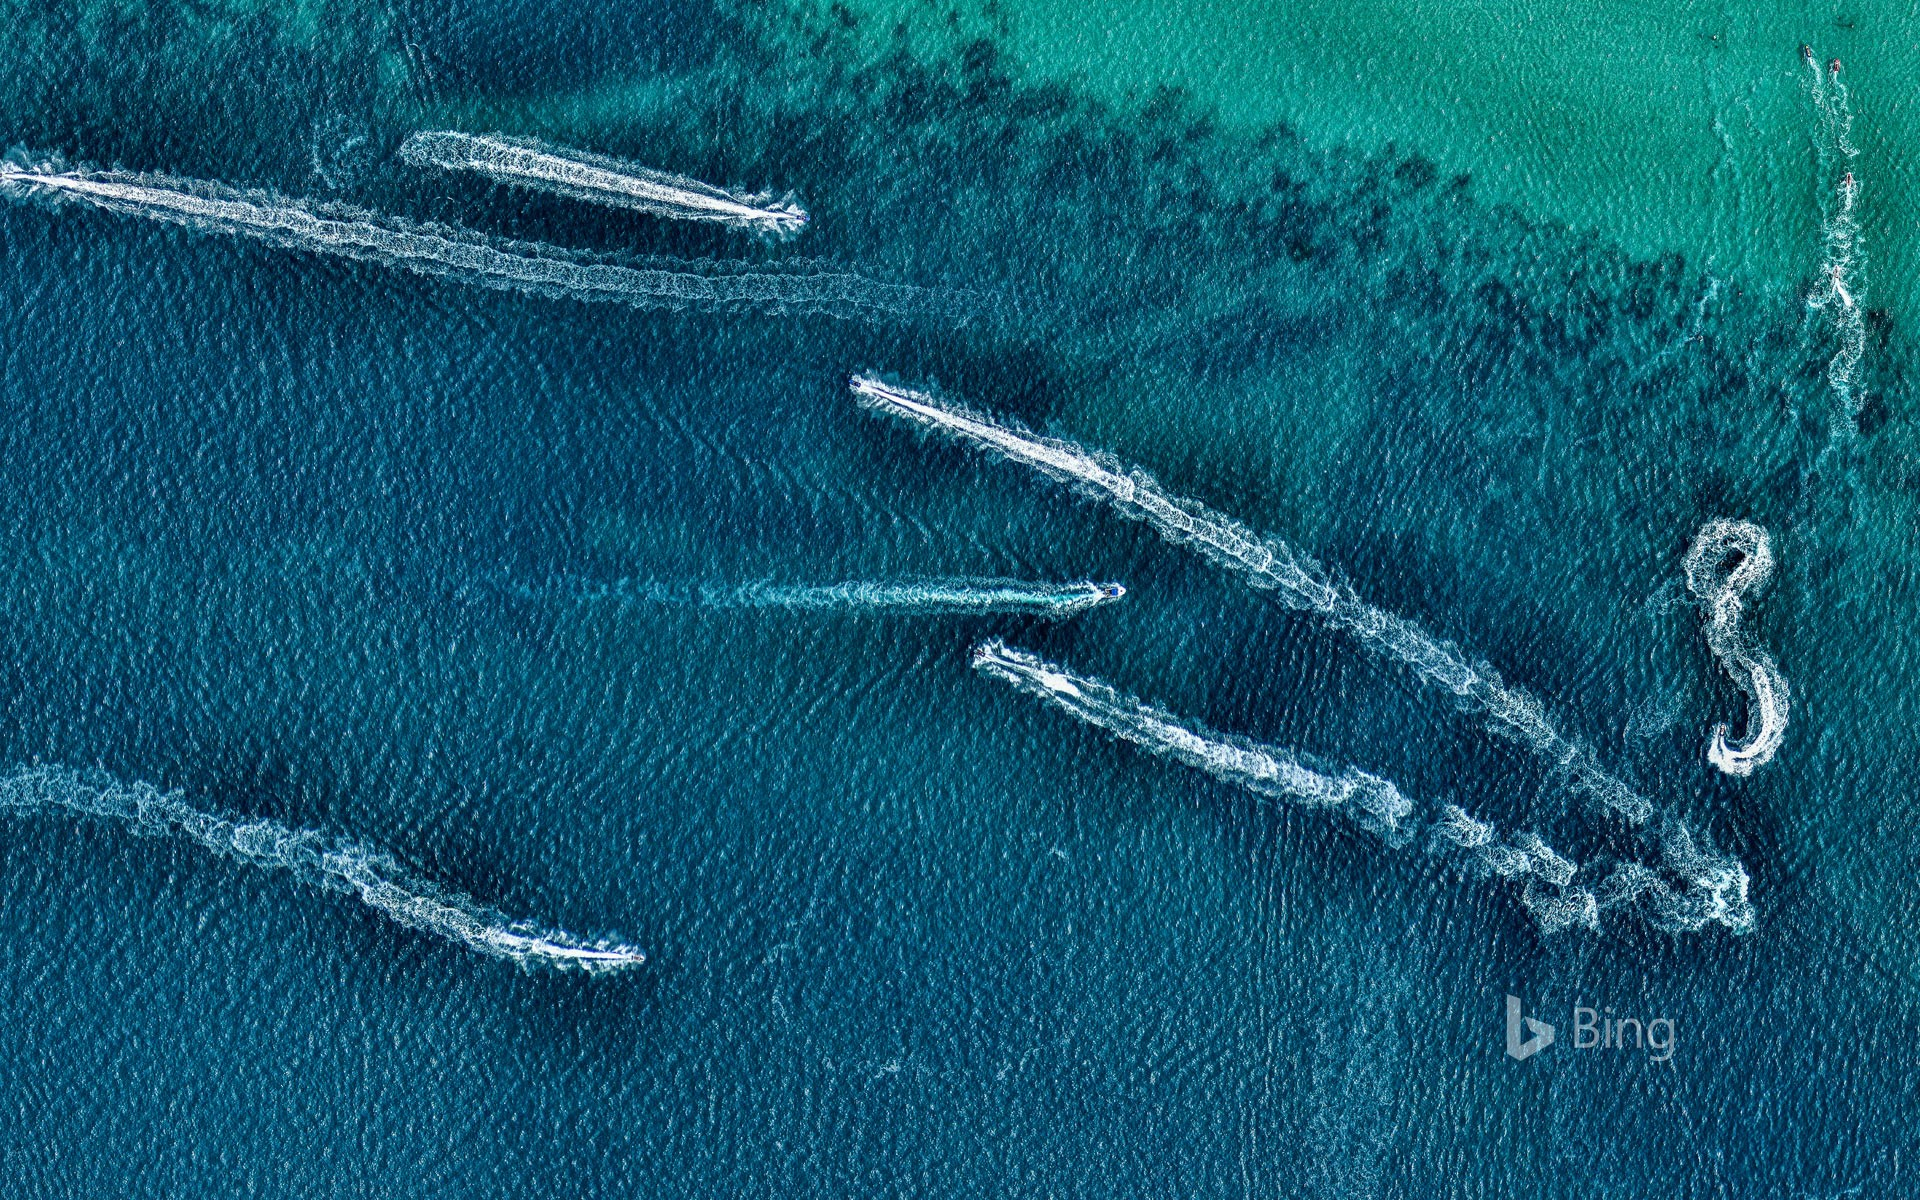 Aerial view of jet skis in the ocean, Australia